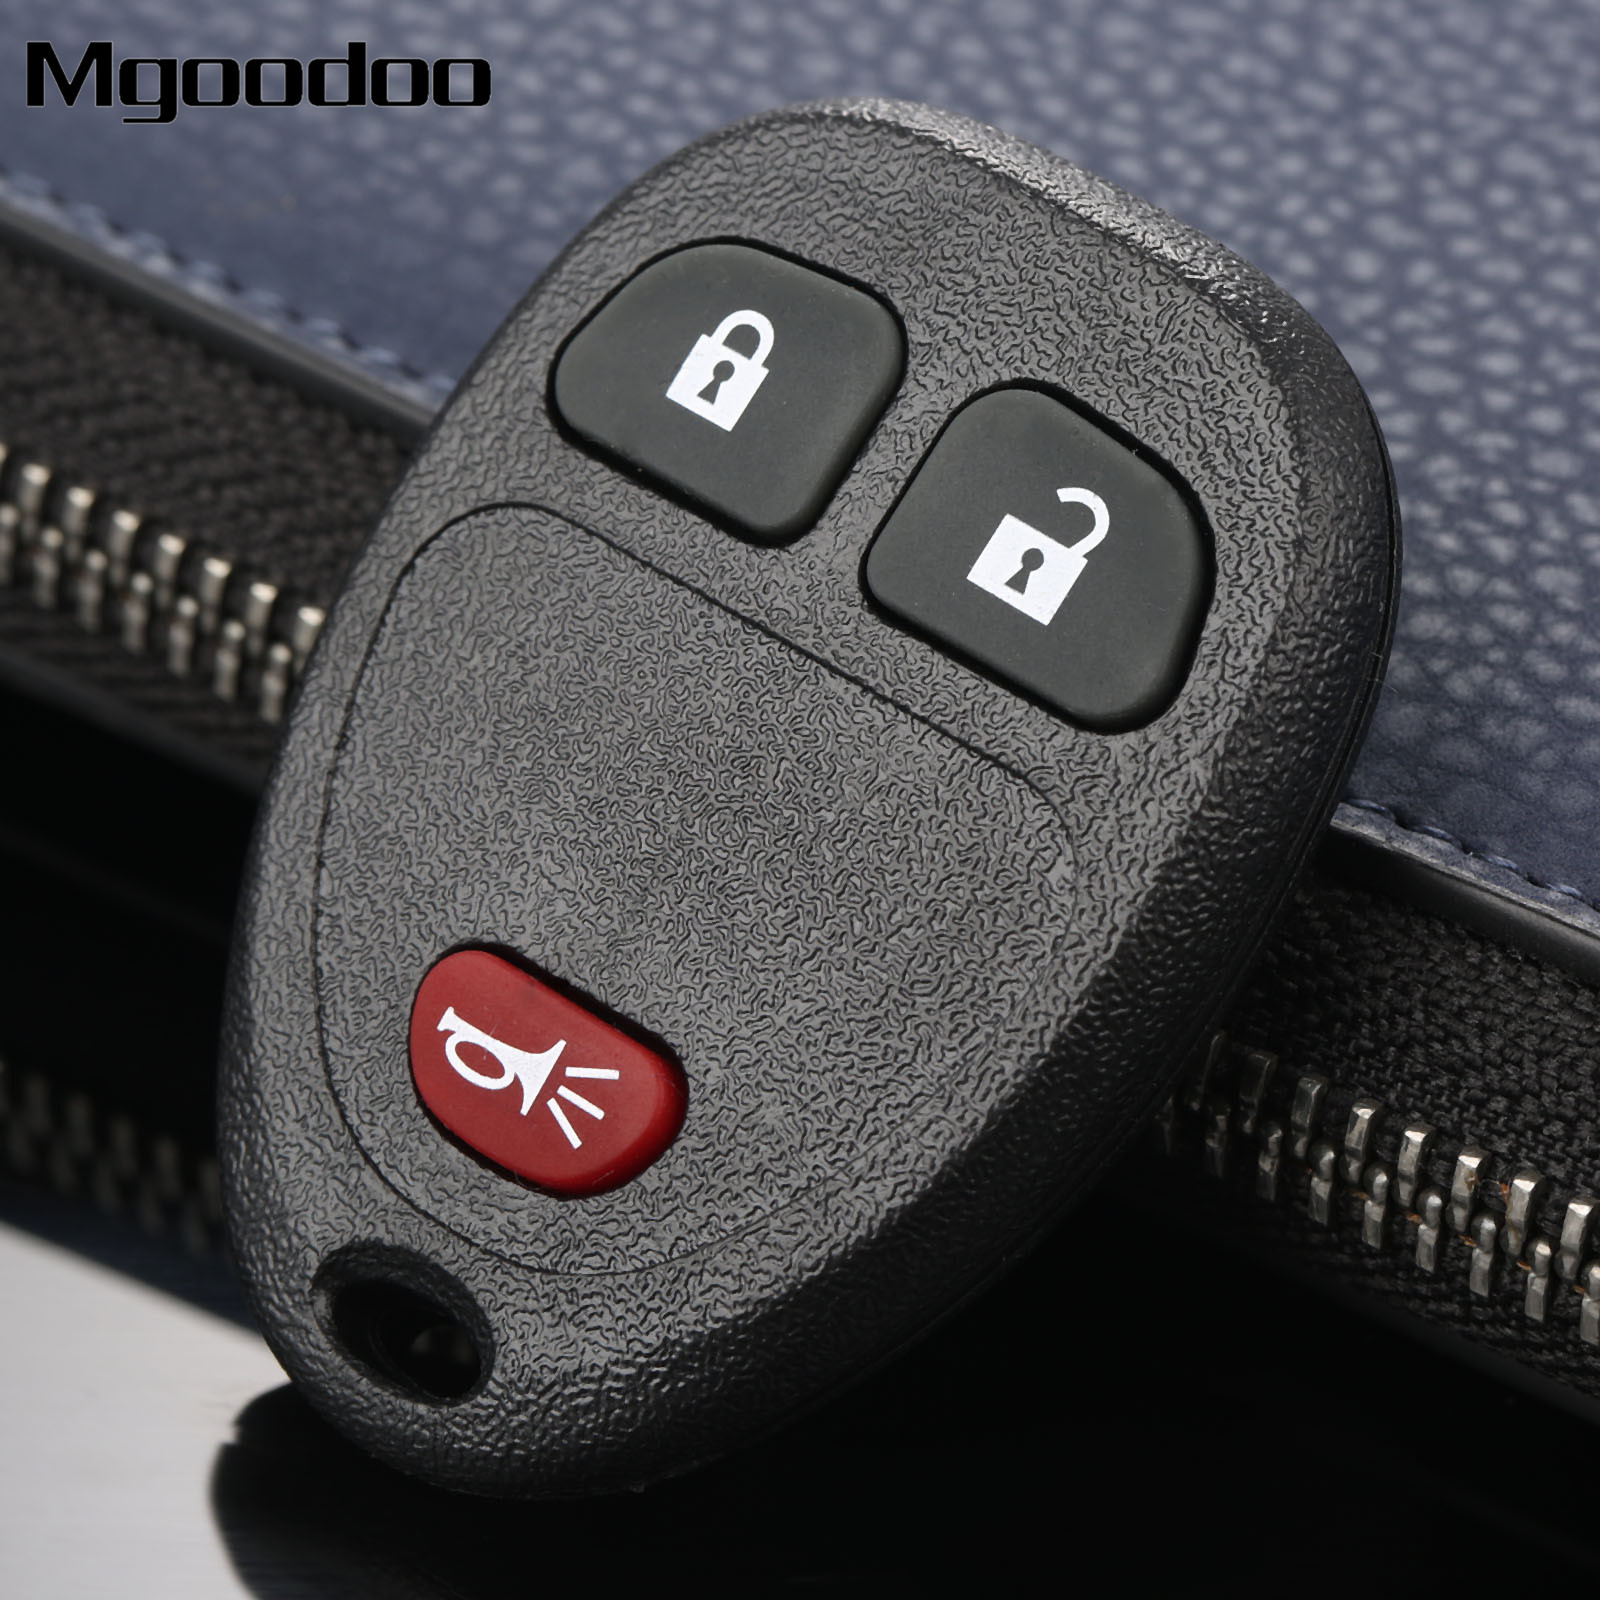 Toyota Sienna 2010-2018 Owners Manual: If the electronic key doesnot operate properly(vehicles with a smartkey system)